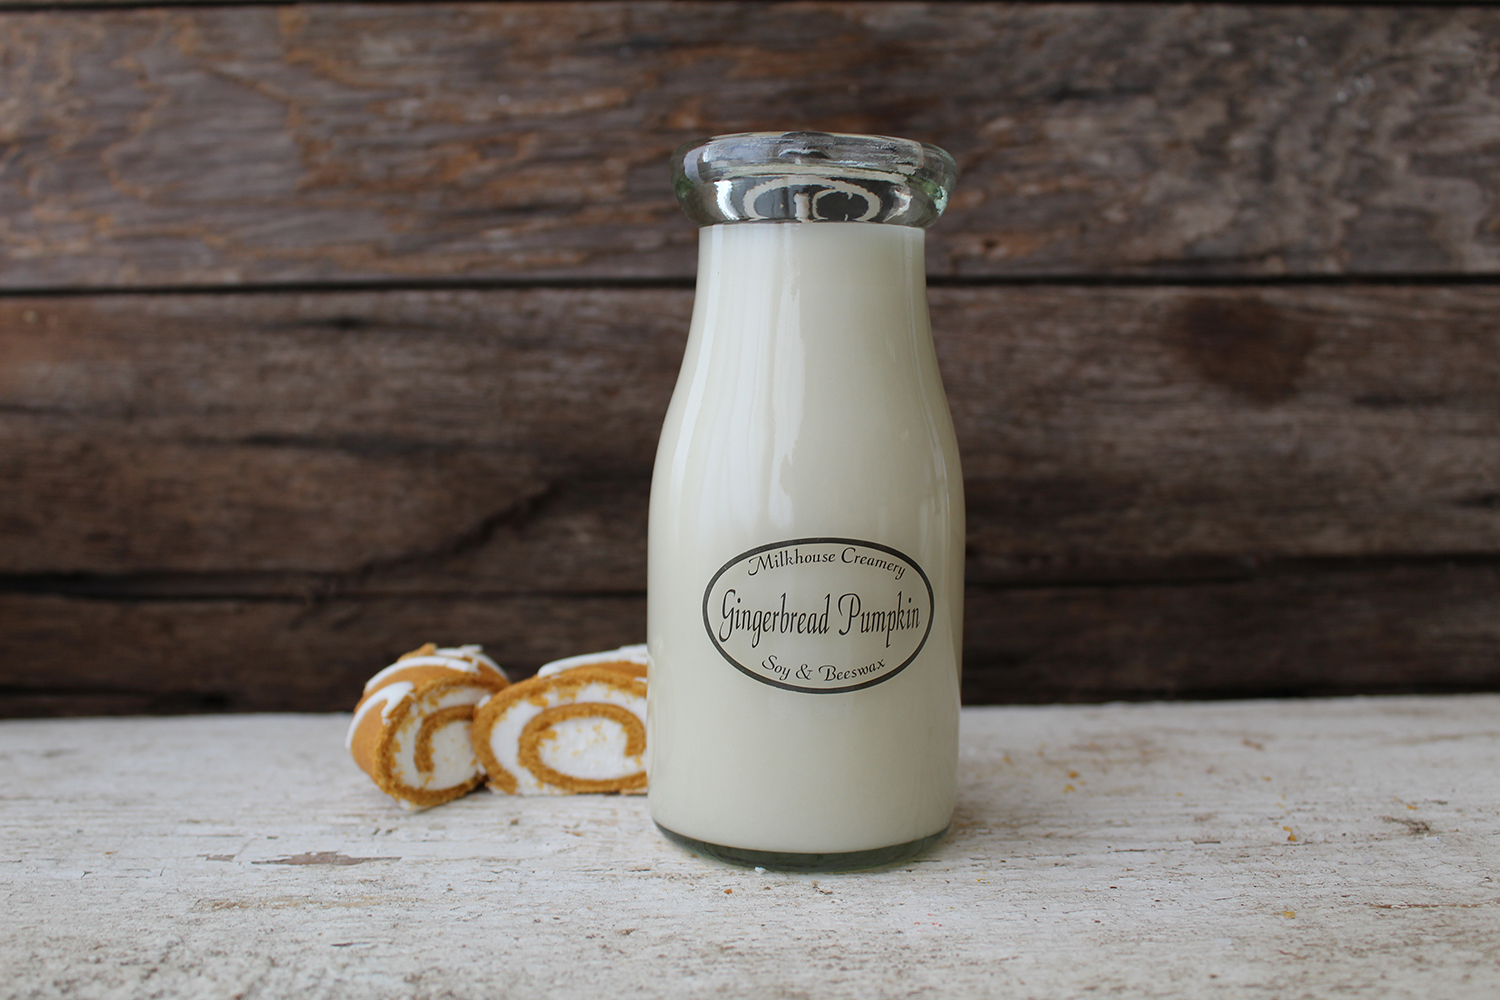 Gingerbread pumpkin? Yes please. The owners behind these candles are inspired by Midwestern agriculture, and use a beeswax and soy wax blend, from US soybeans. Milkhouse Creamery also offers  a Sugar Plum scented candle ...and  Apple Streudel ...yum. Gotta stop browsing Milkhouse candle scents...